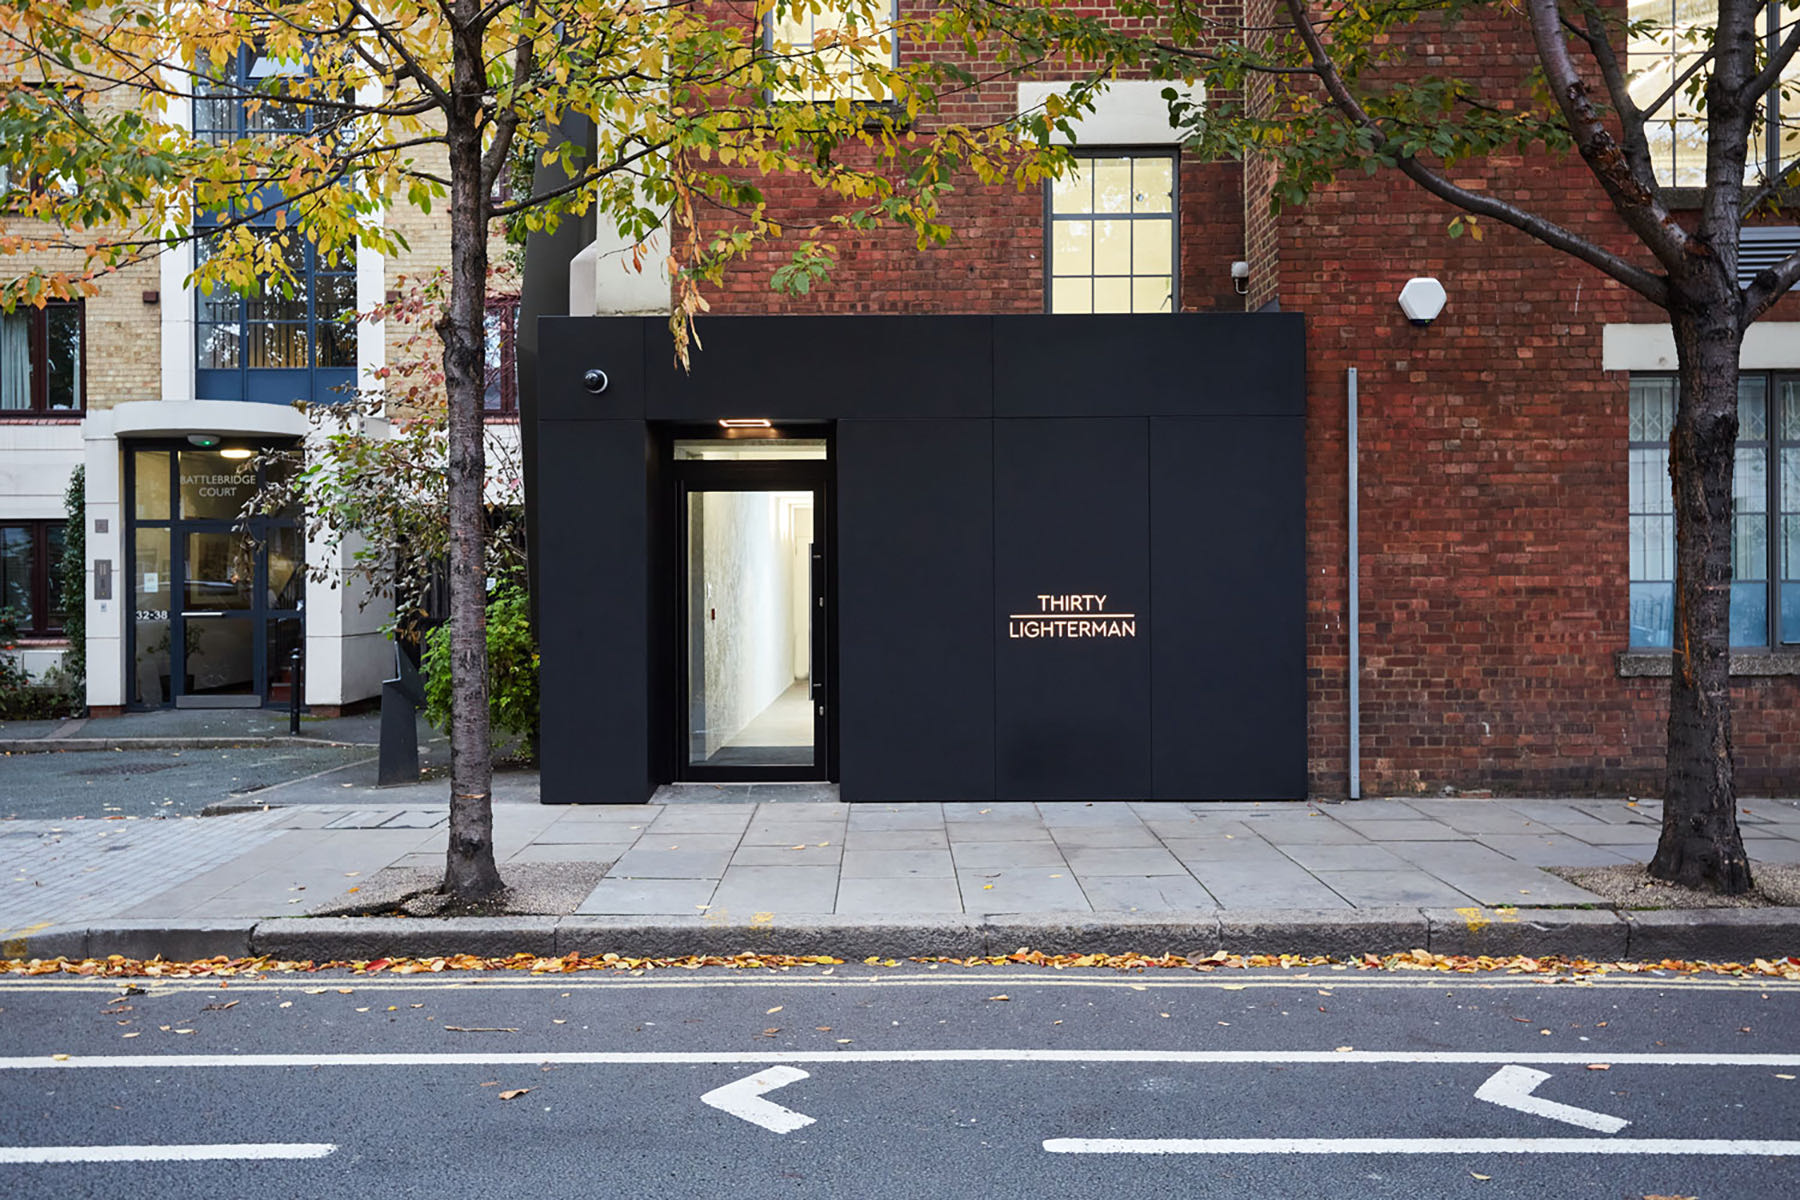 lighterman-house-office-london-6